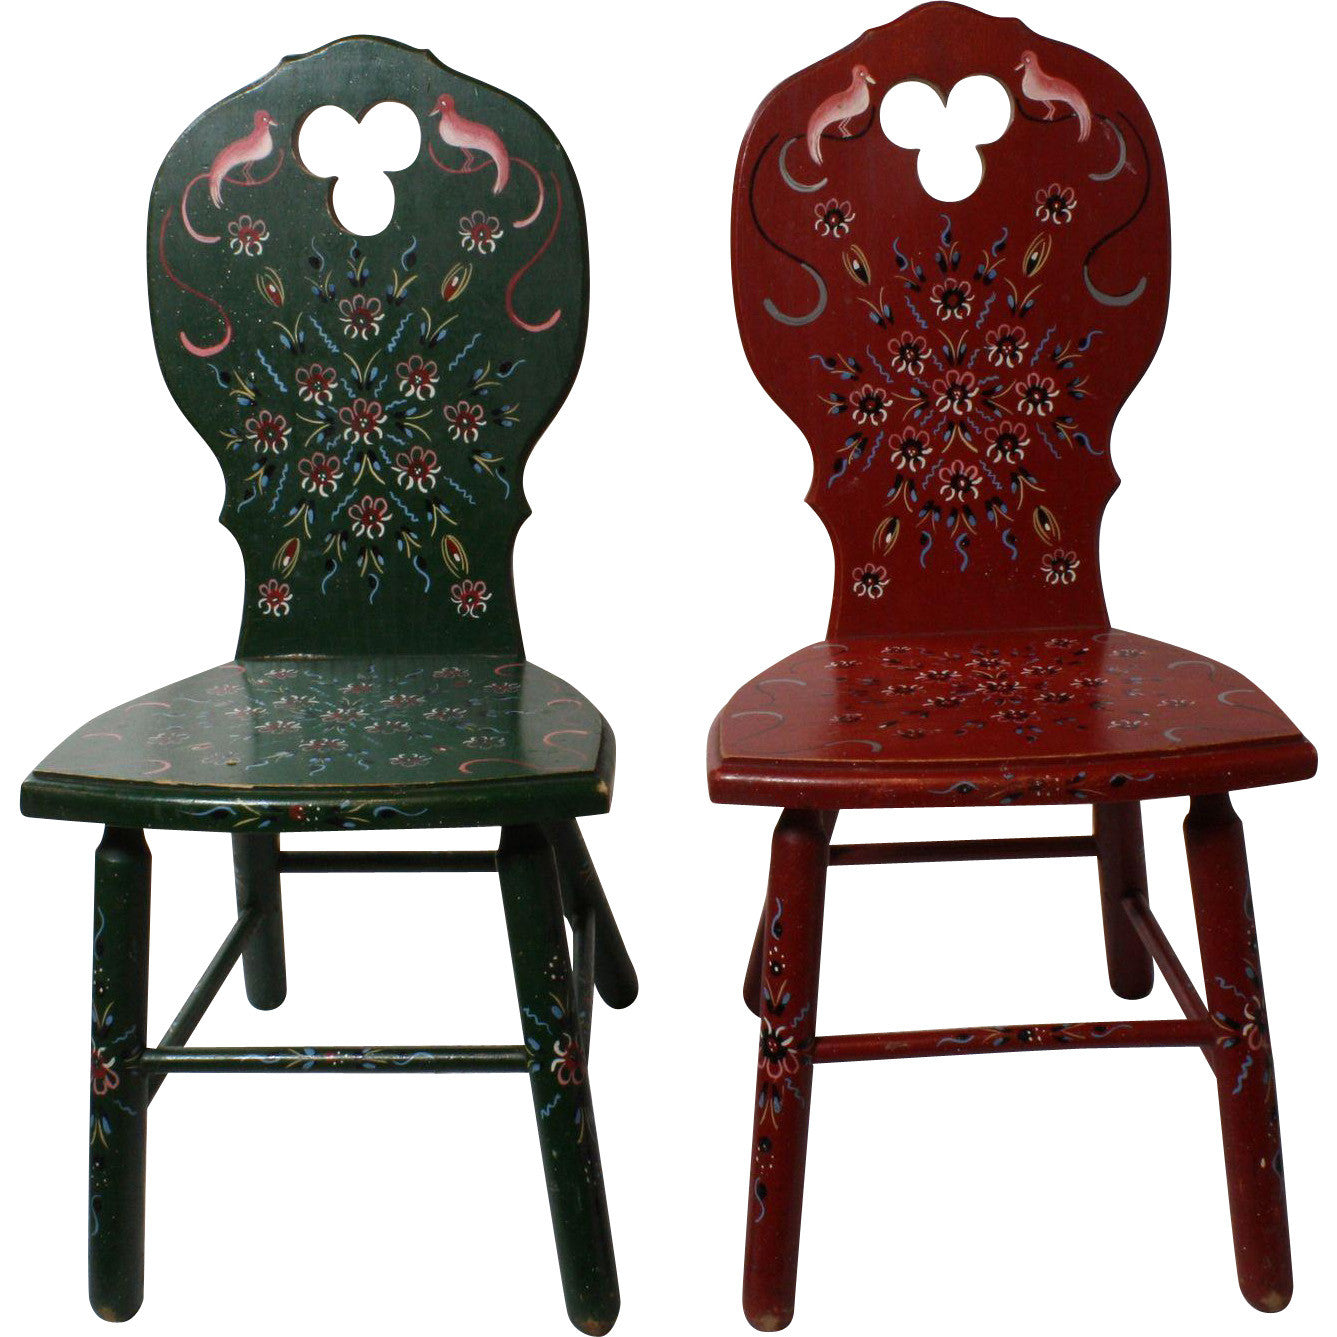 Scandinavian Painted Children's Play Chairs Set of 2